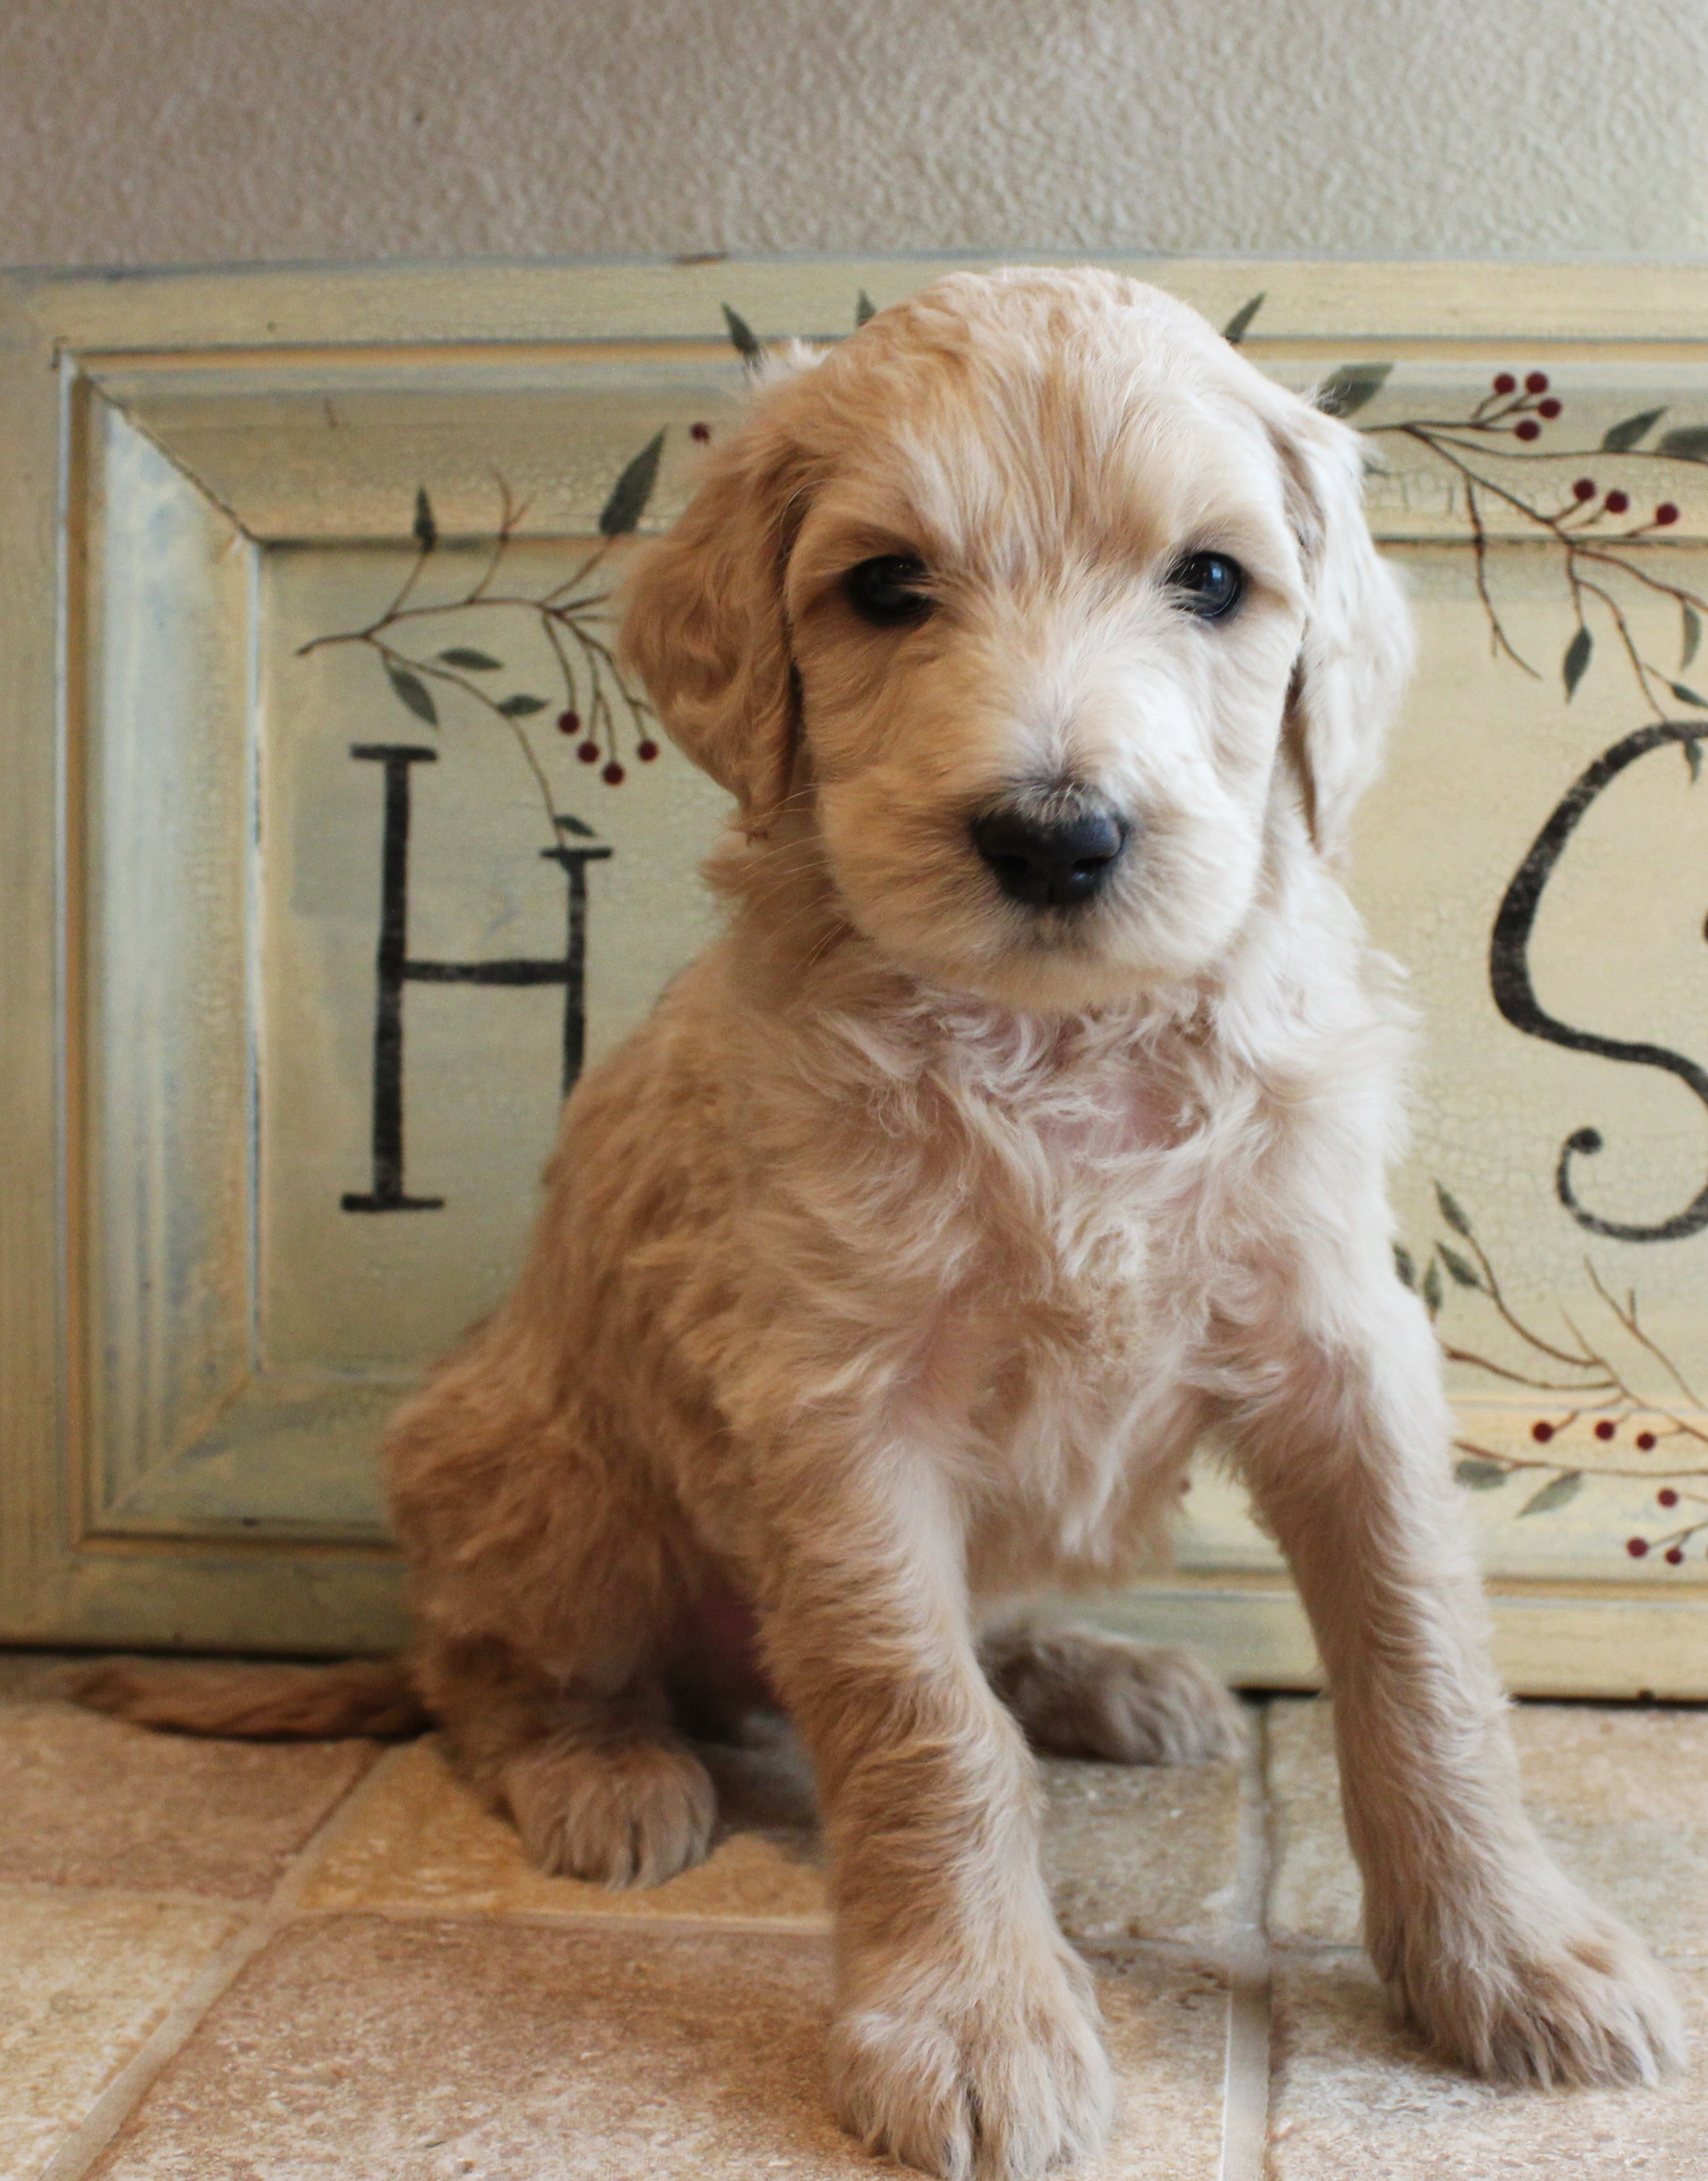 We have one labradoodle puppy available now!